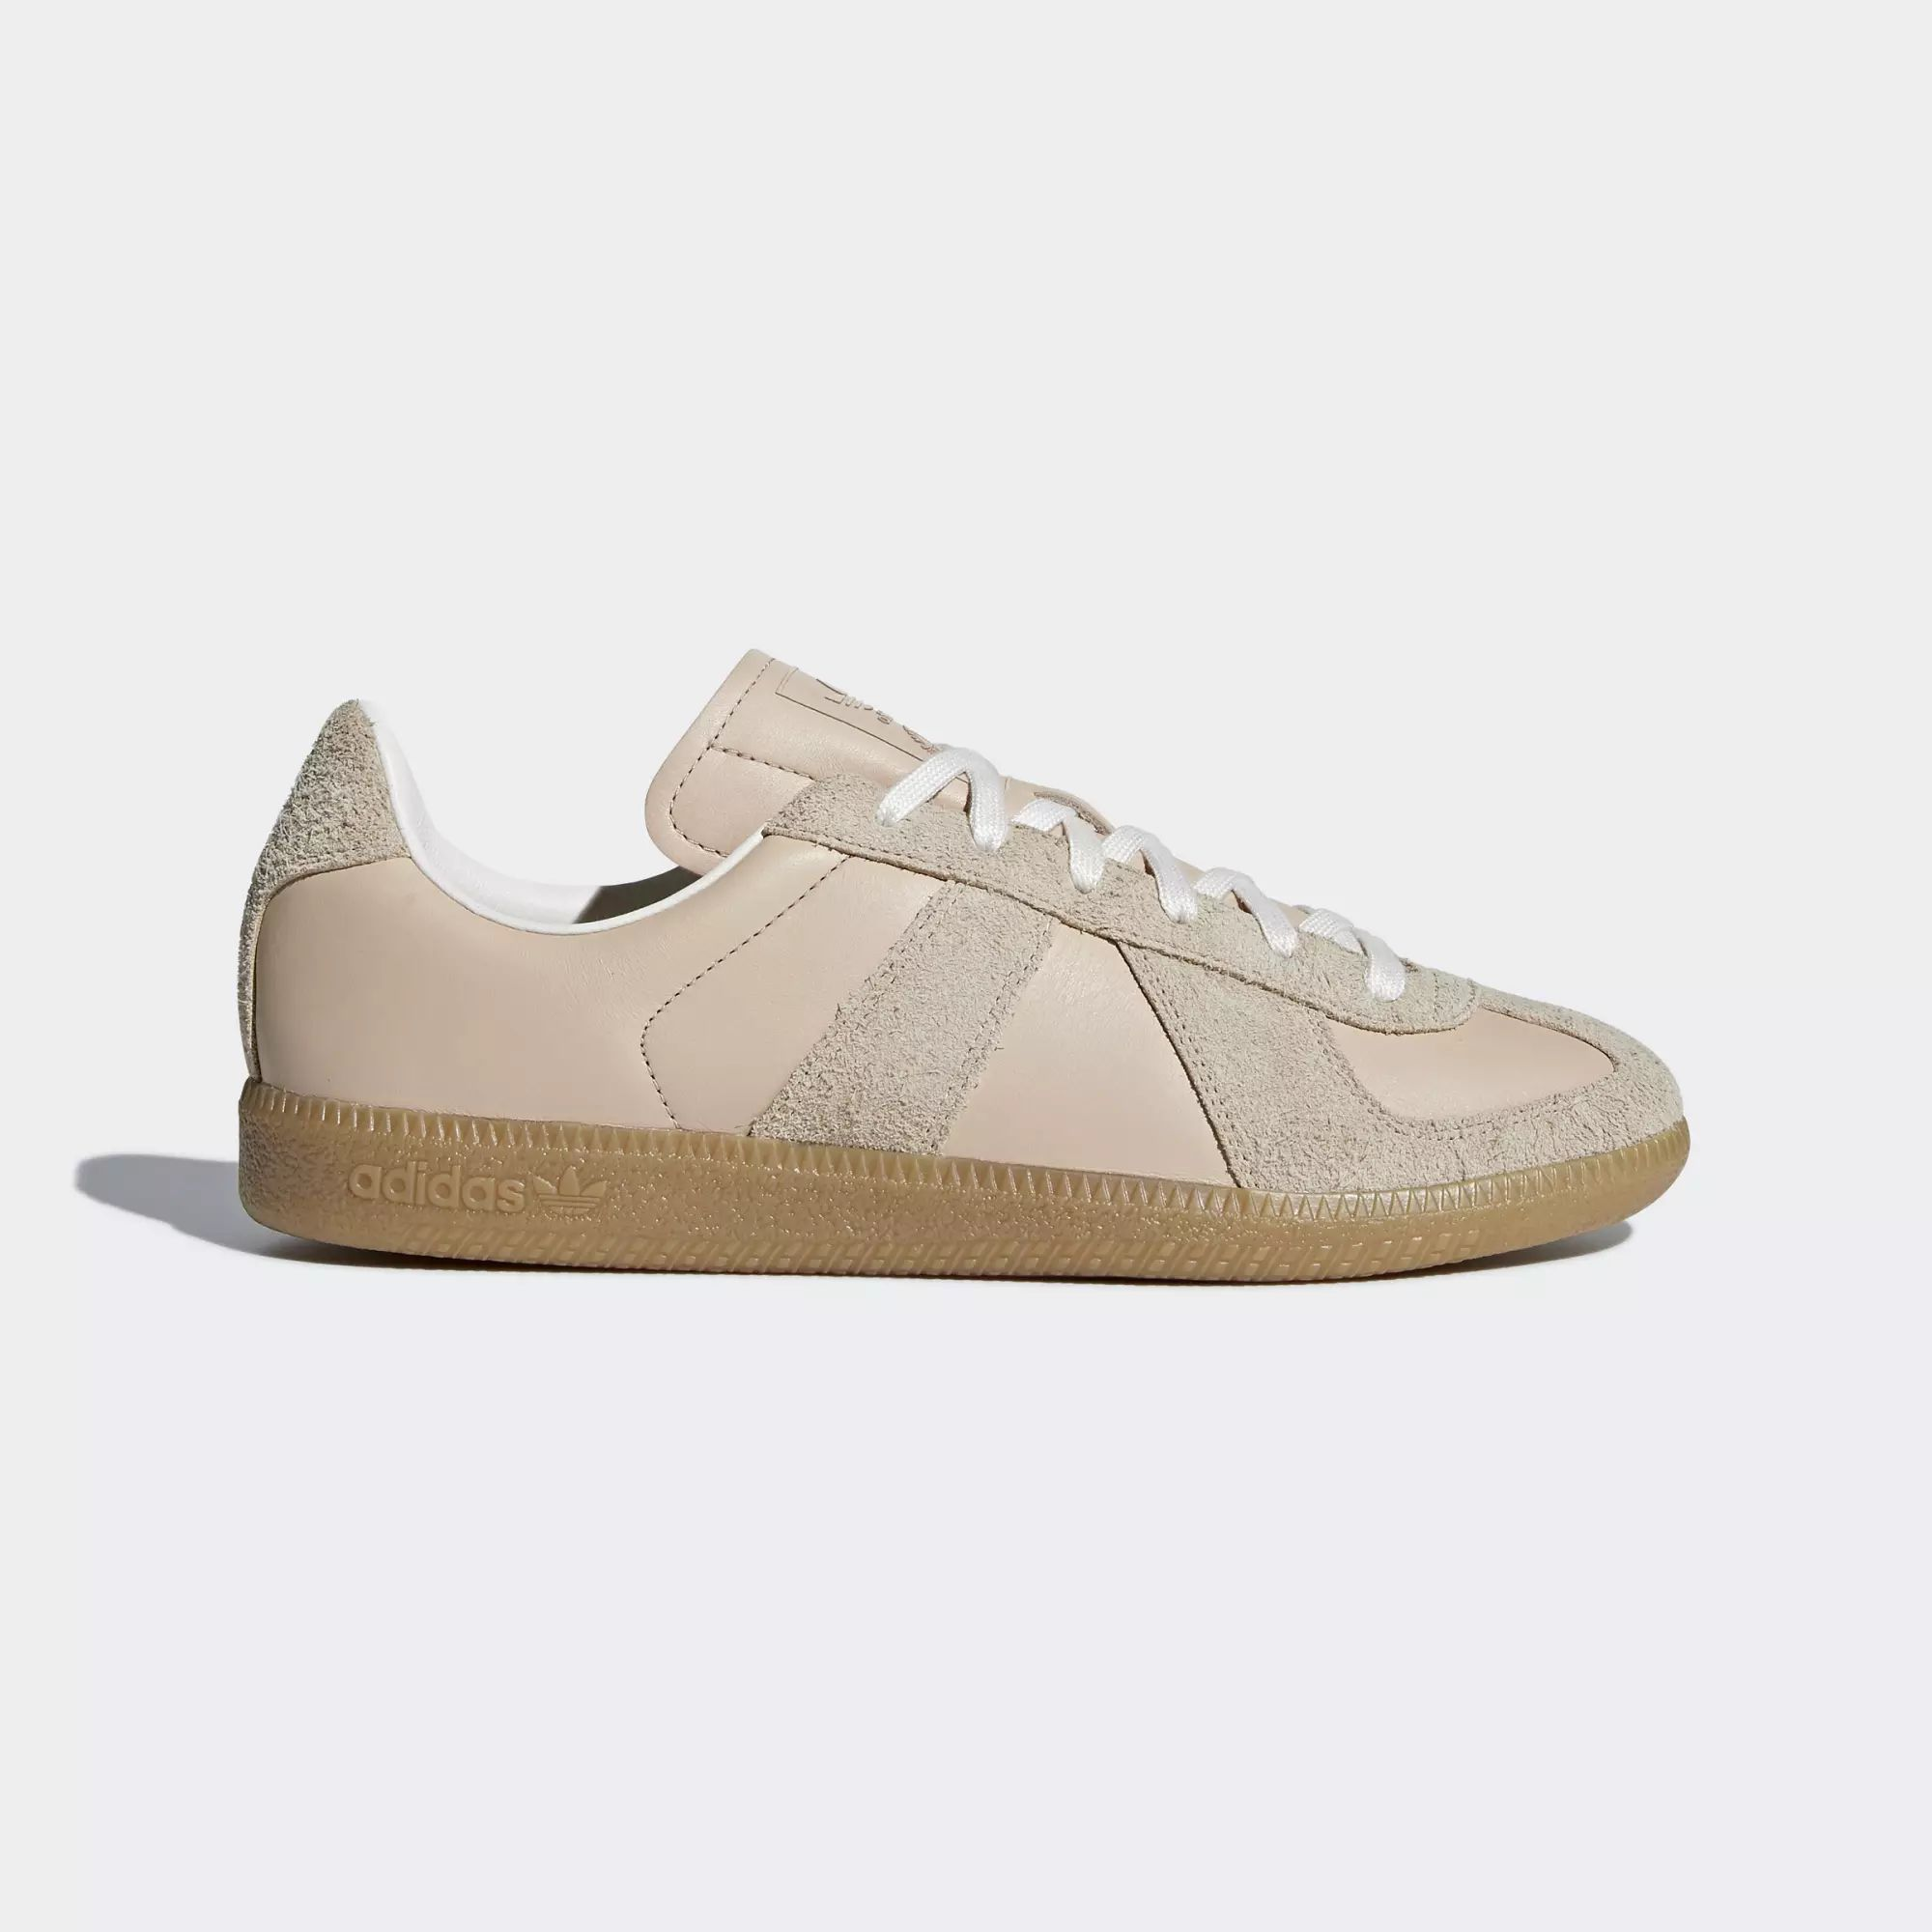 ca1081fce35f Adidas BW Army Shoes - St Pale Nude   St Pale Nude   Chalk White ...